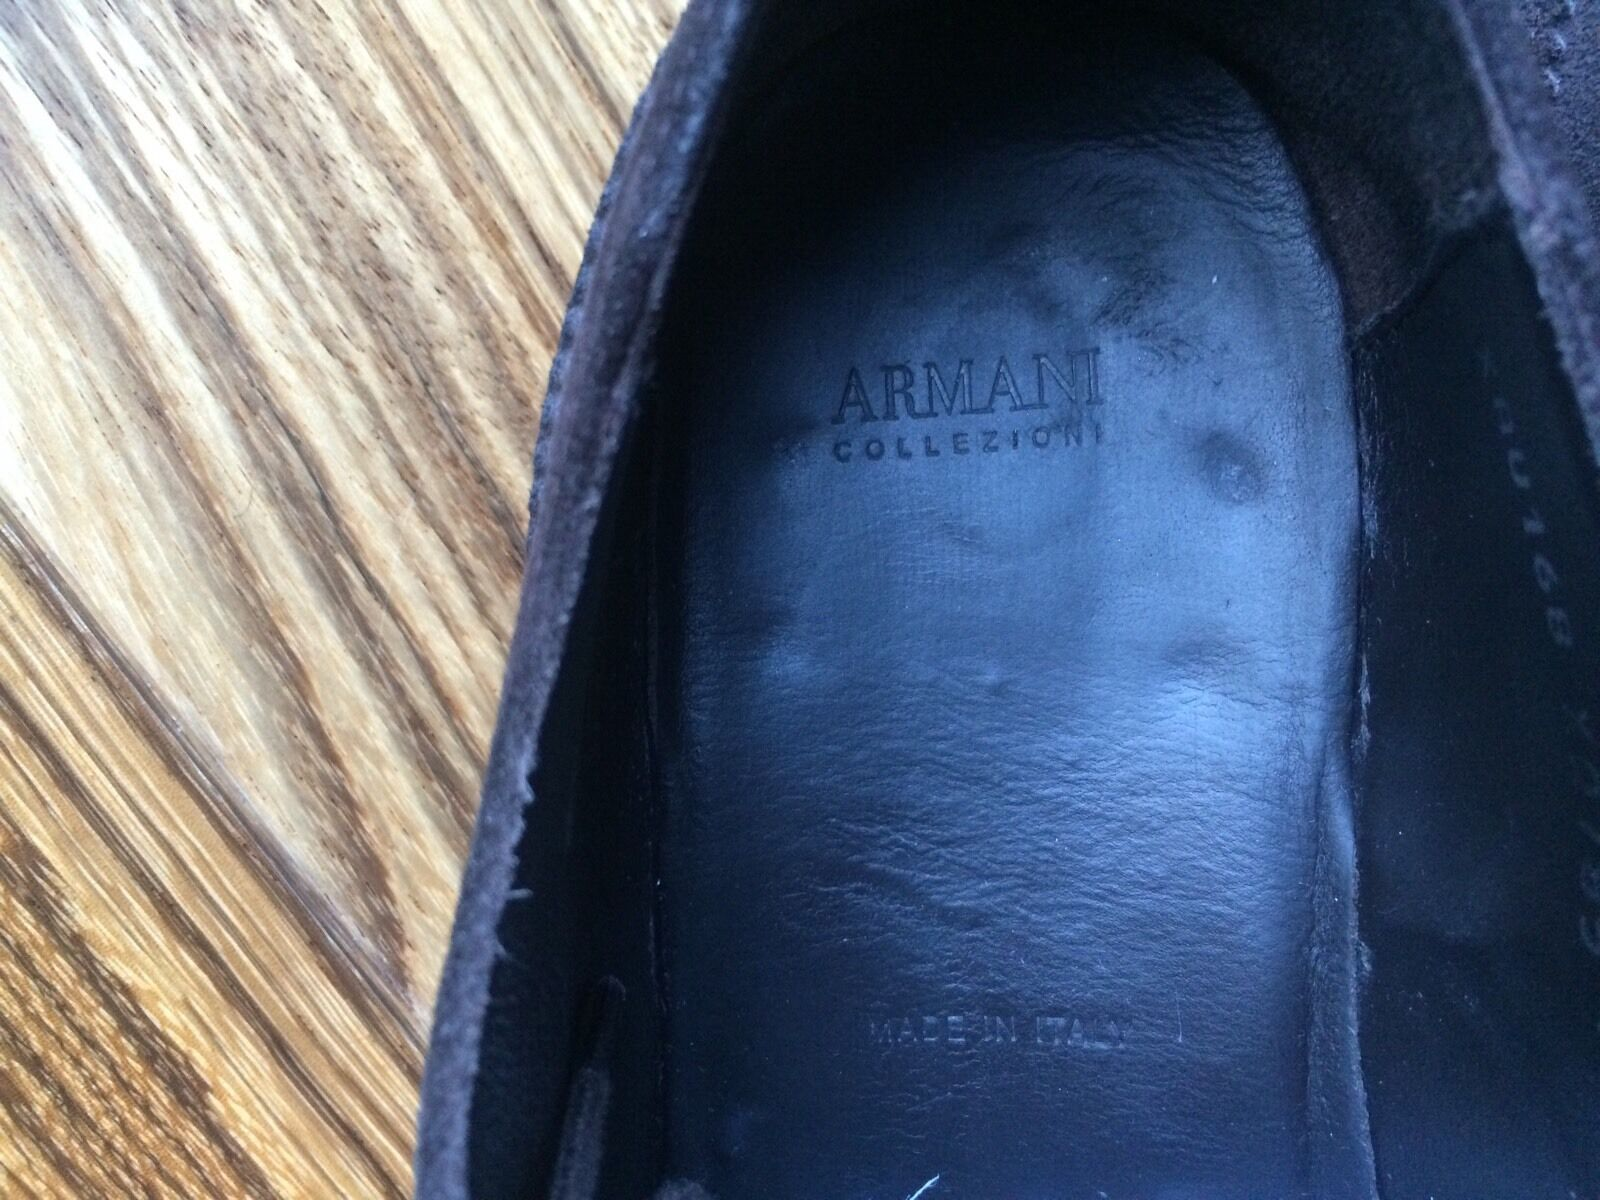 Original ARMANI COLLEZIONI  Budapester Schuhe  Wildleder Gr.41 Gr.41 Wildleder UK 7 TOP MODEL 6f4149